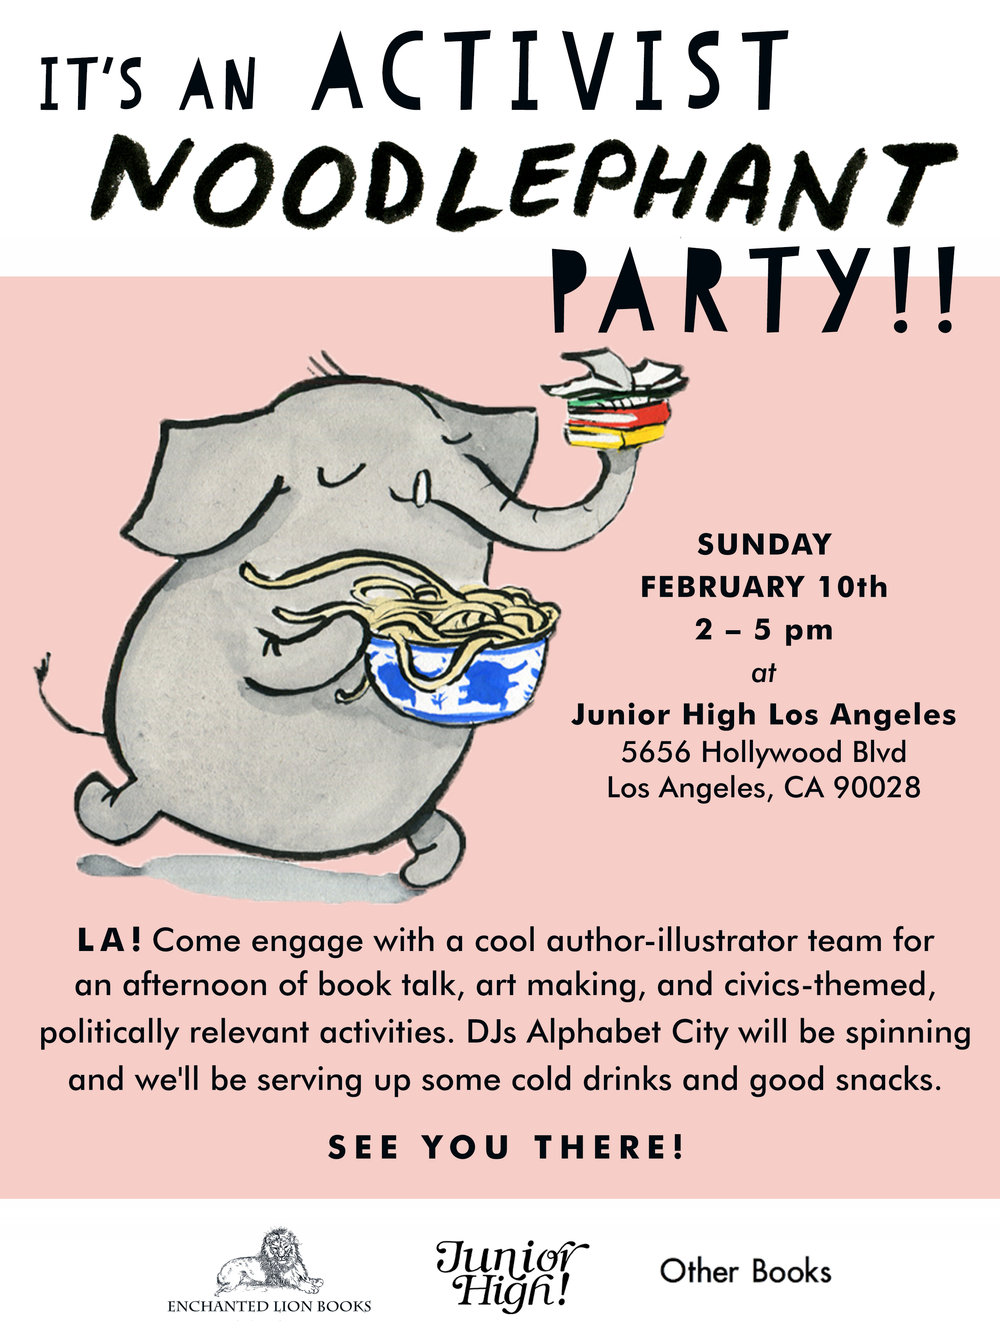 noodlephant party poster final.jpg